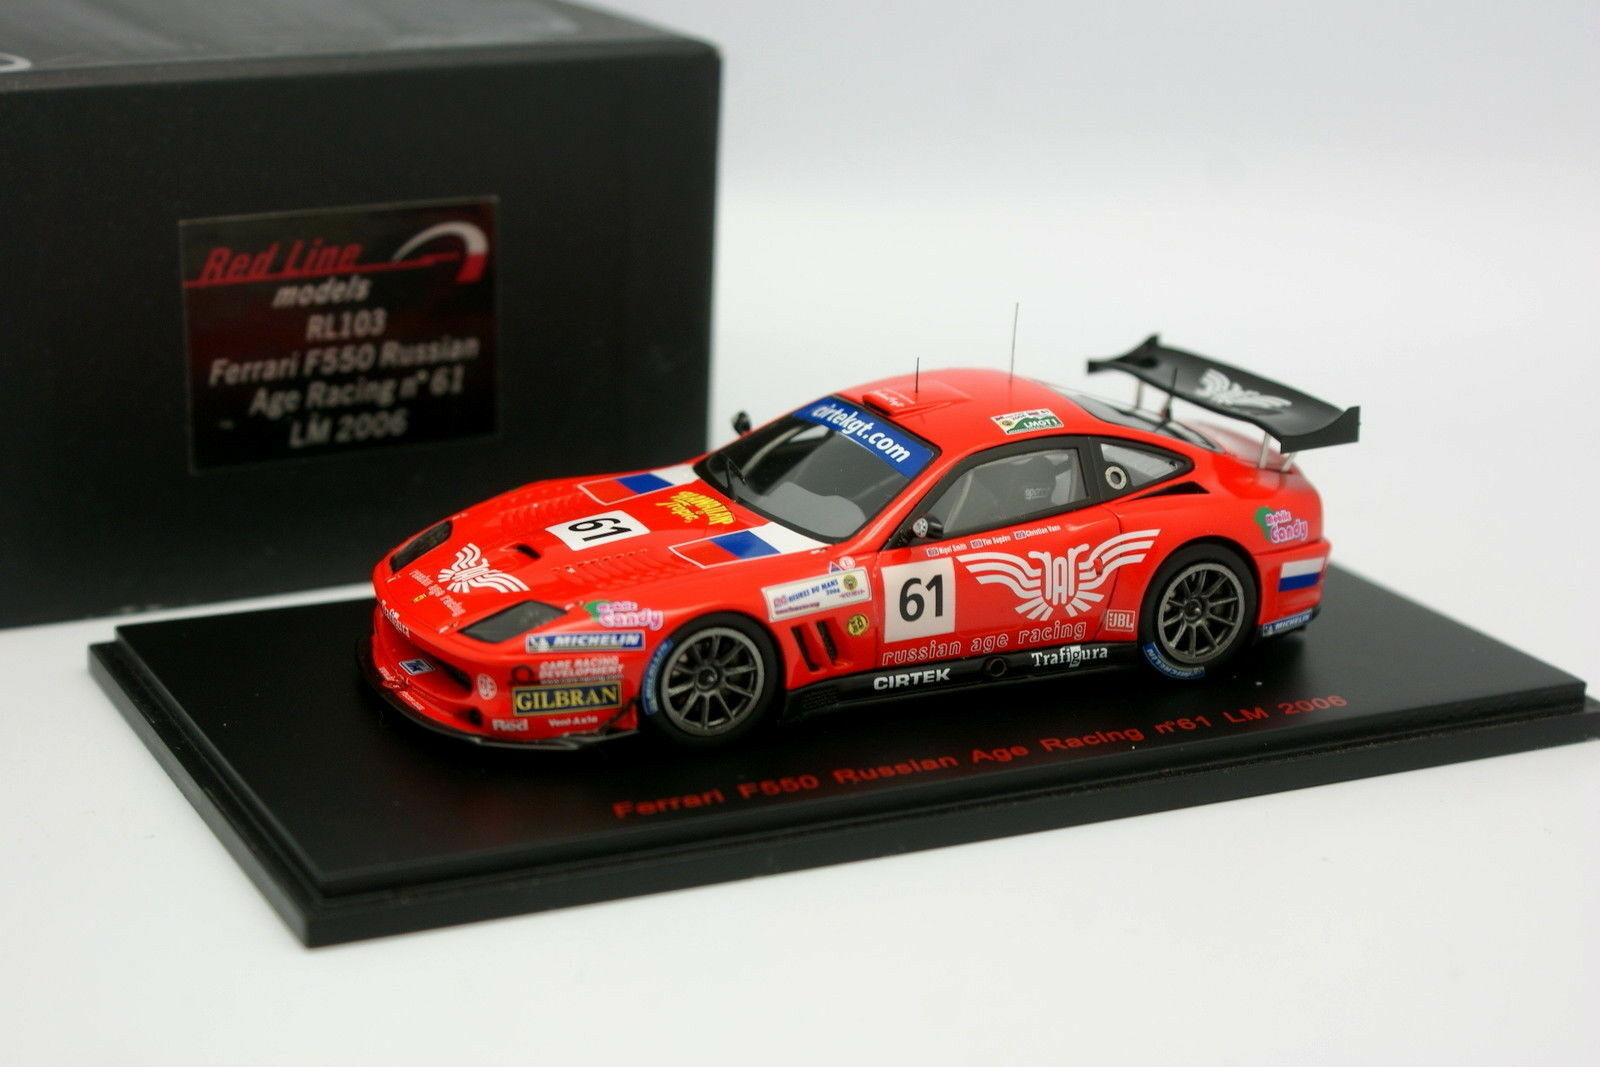 Rote linie 1   43 - ferrari f550 le mans russischen alter racing n ° 61 le mans 2006